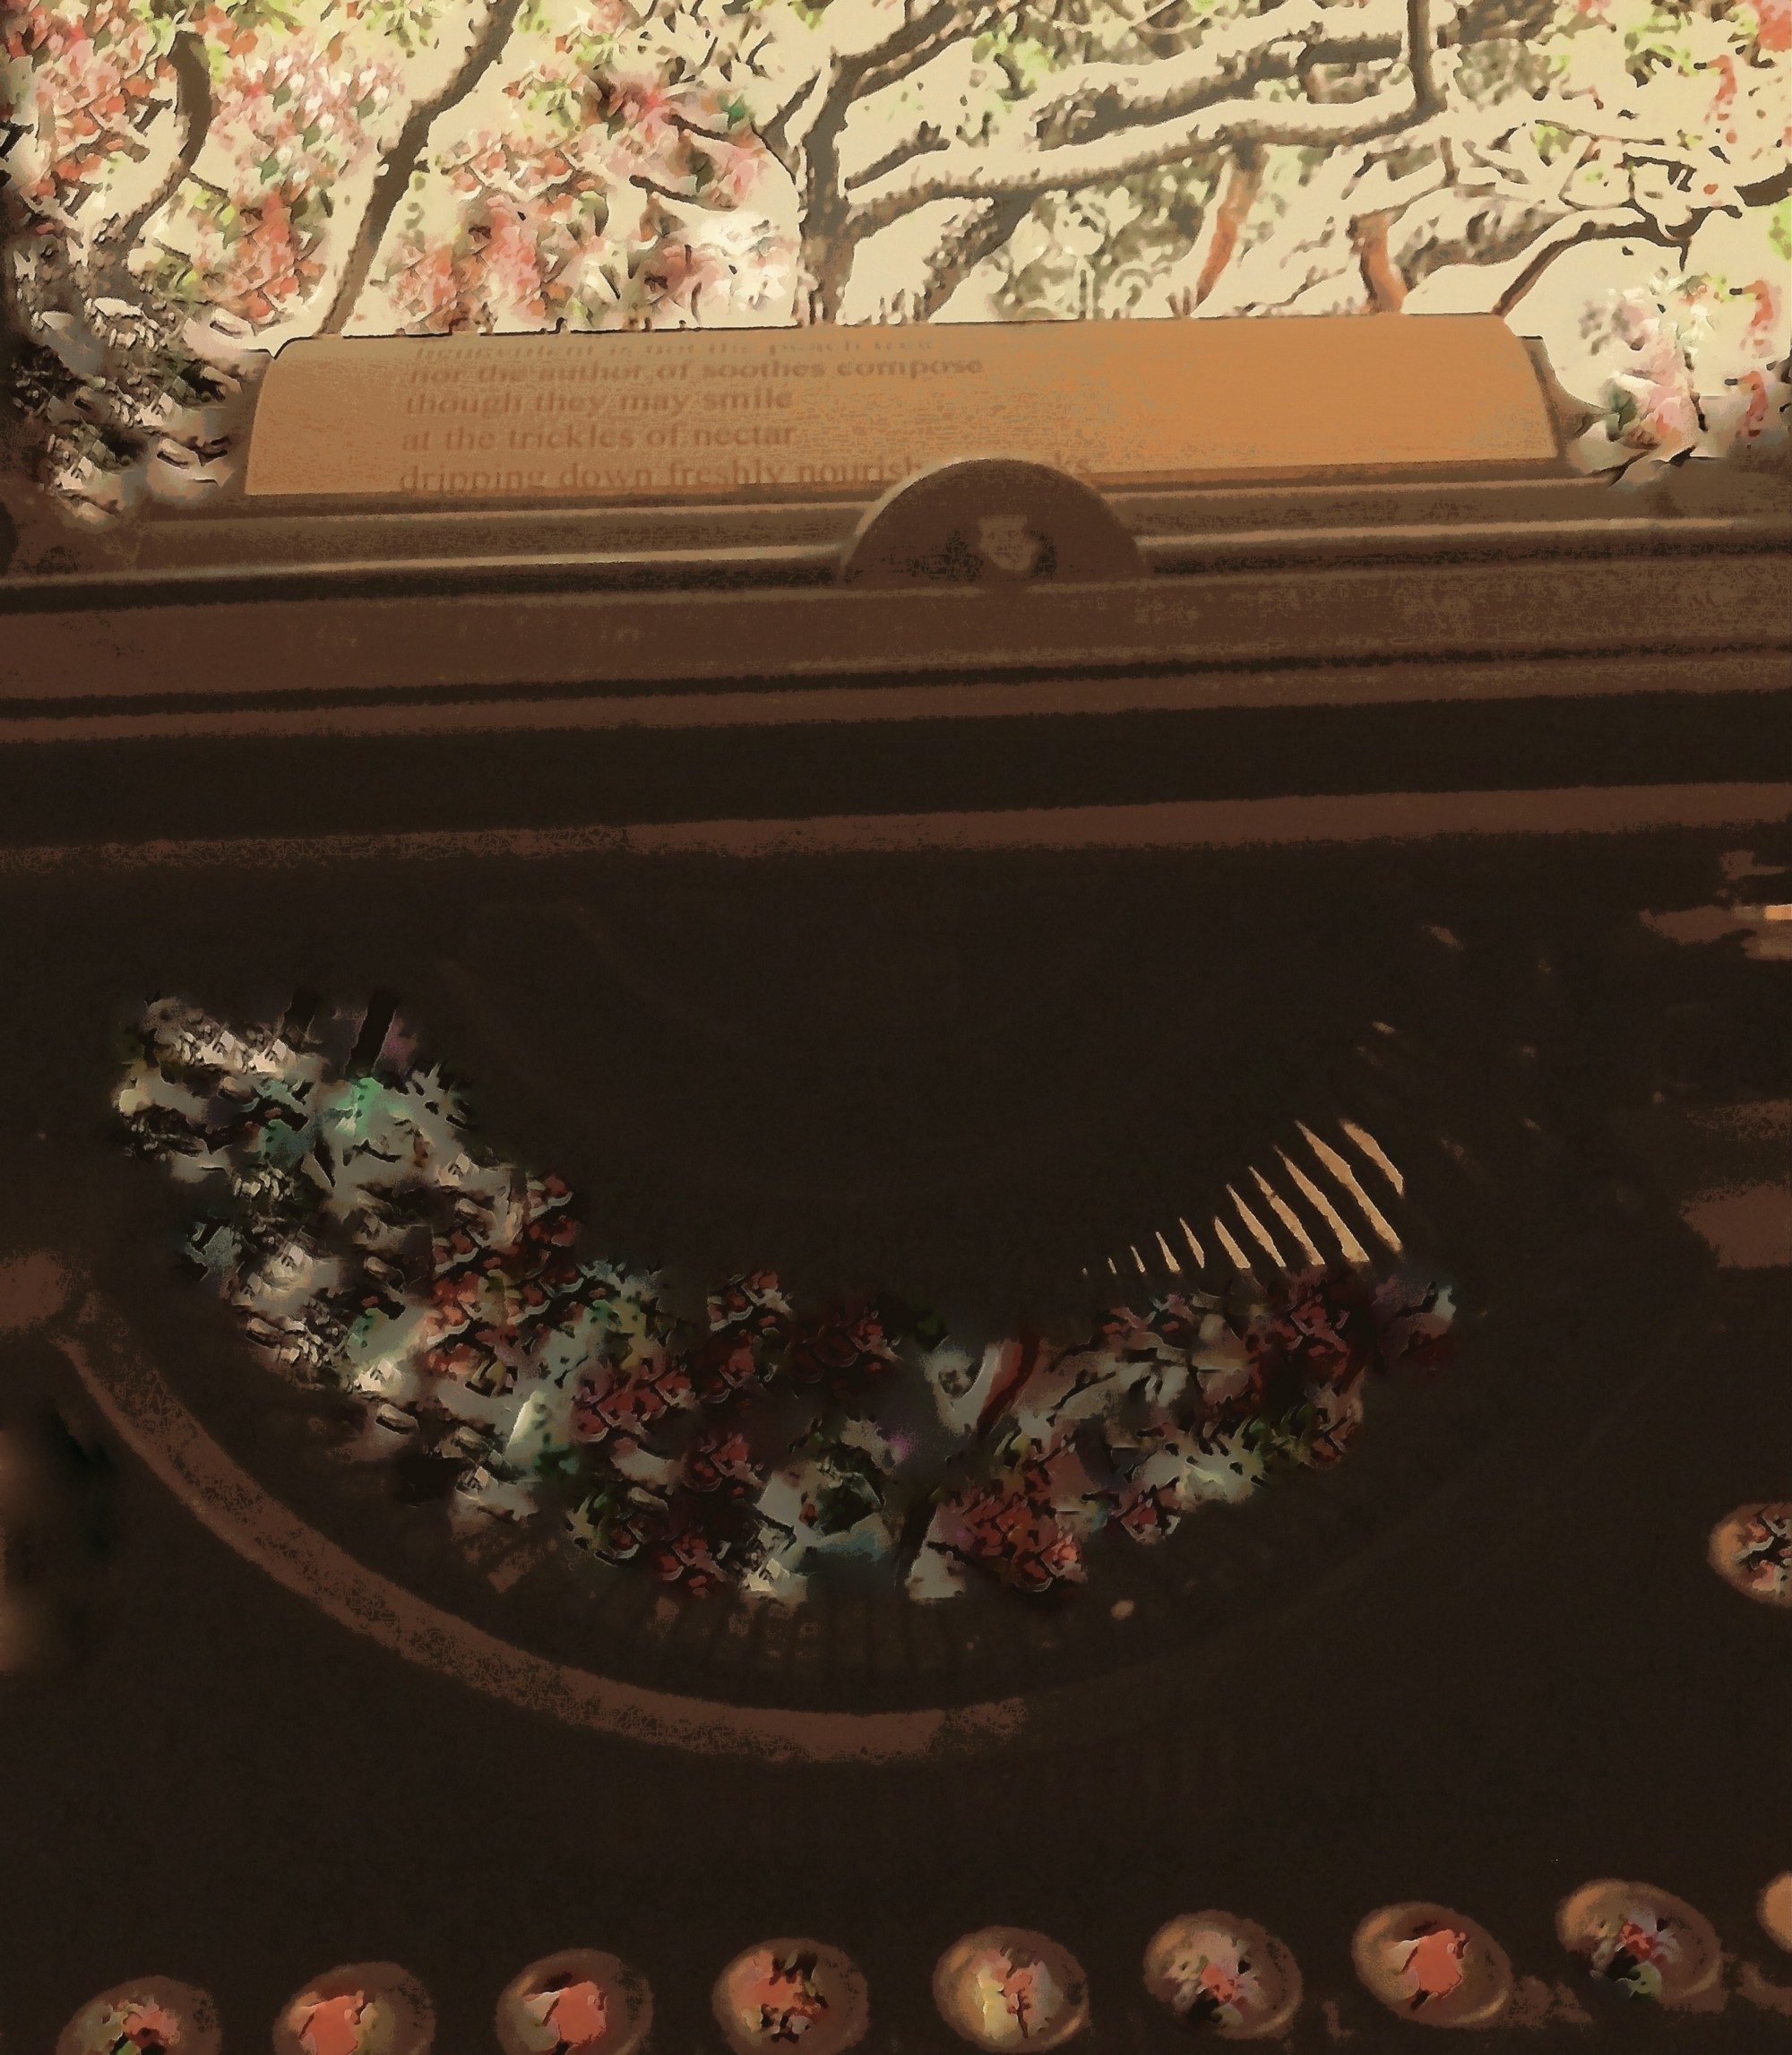 Photograph of my typewriter immersed in a peach tree the buttons are marked with blosoms